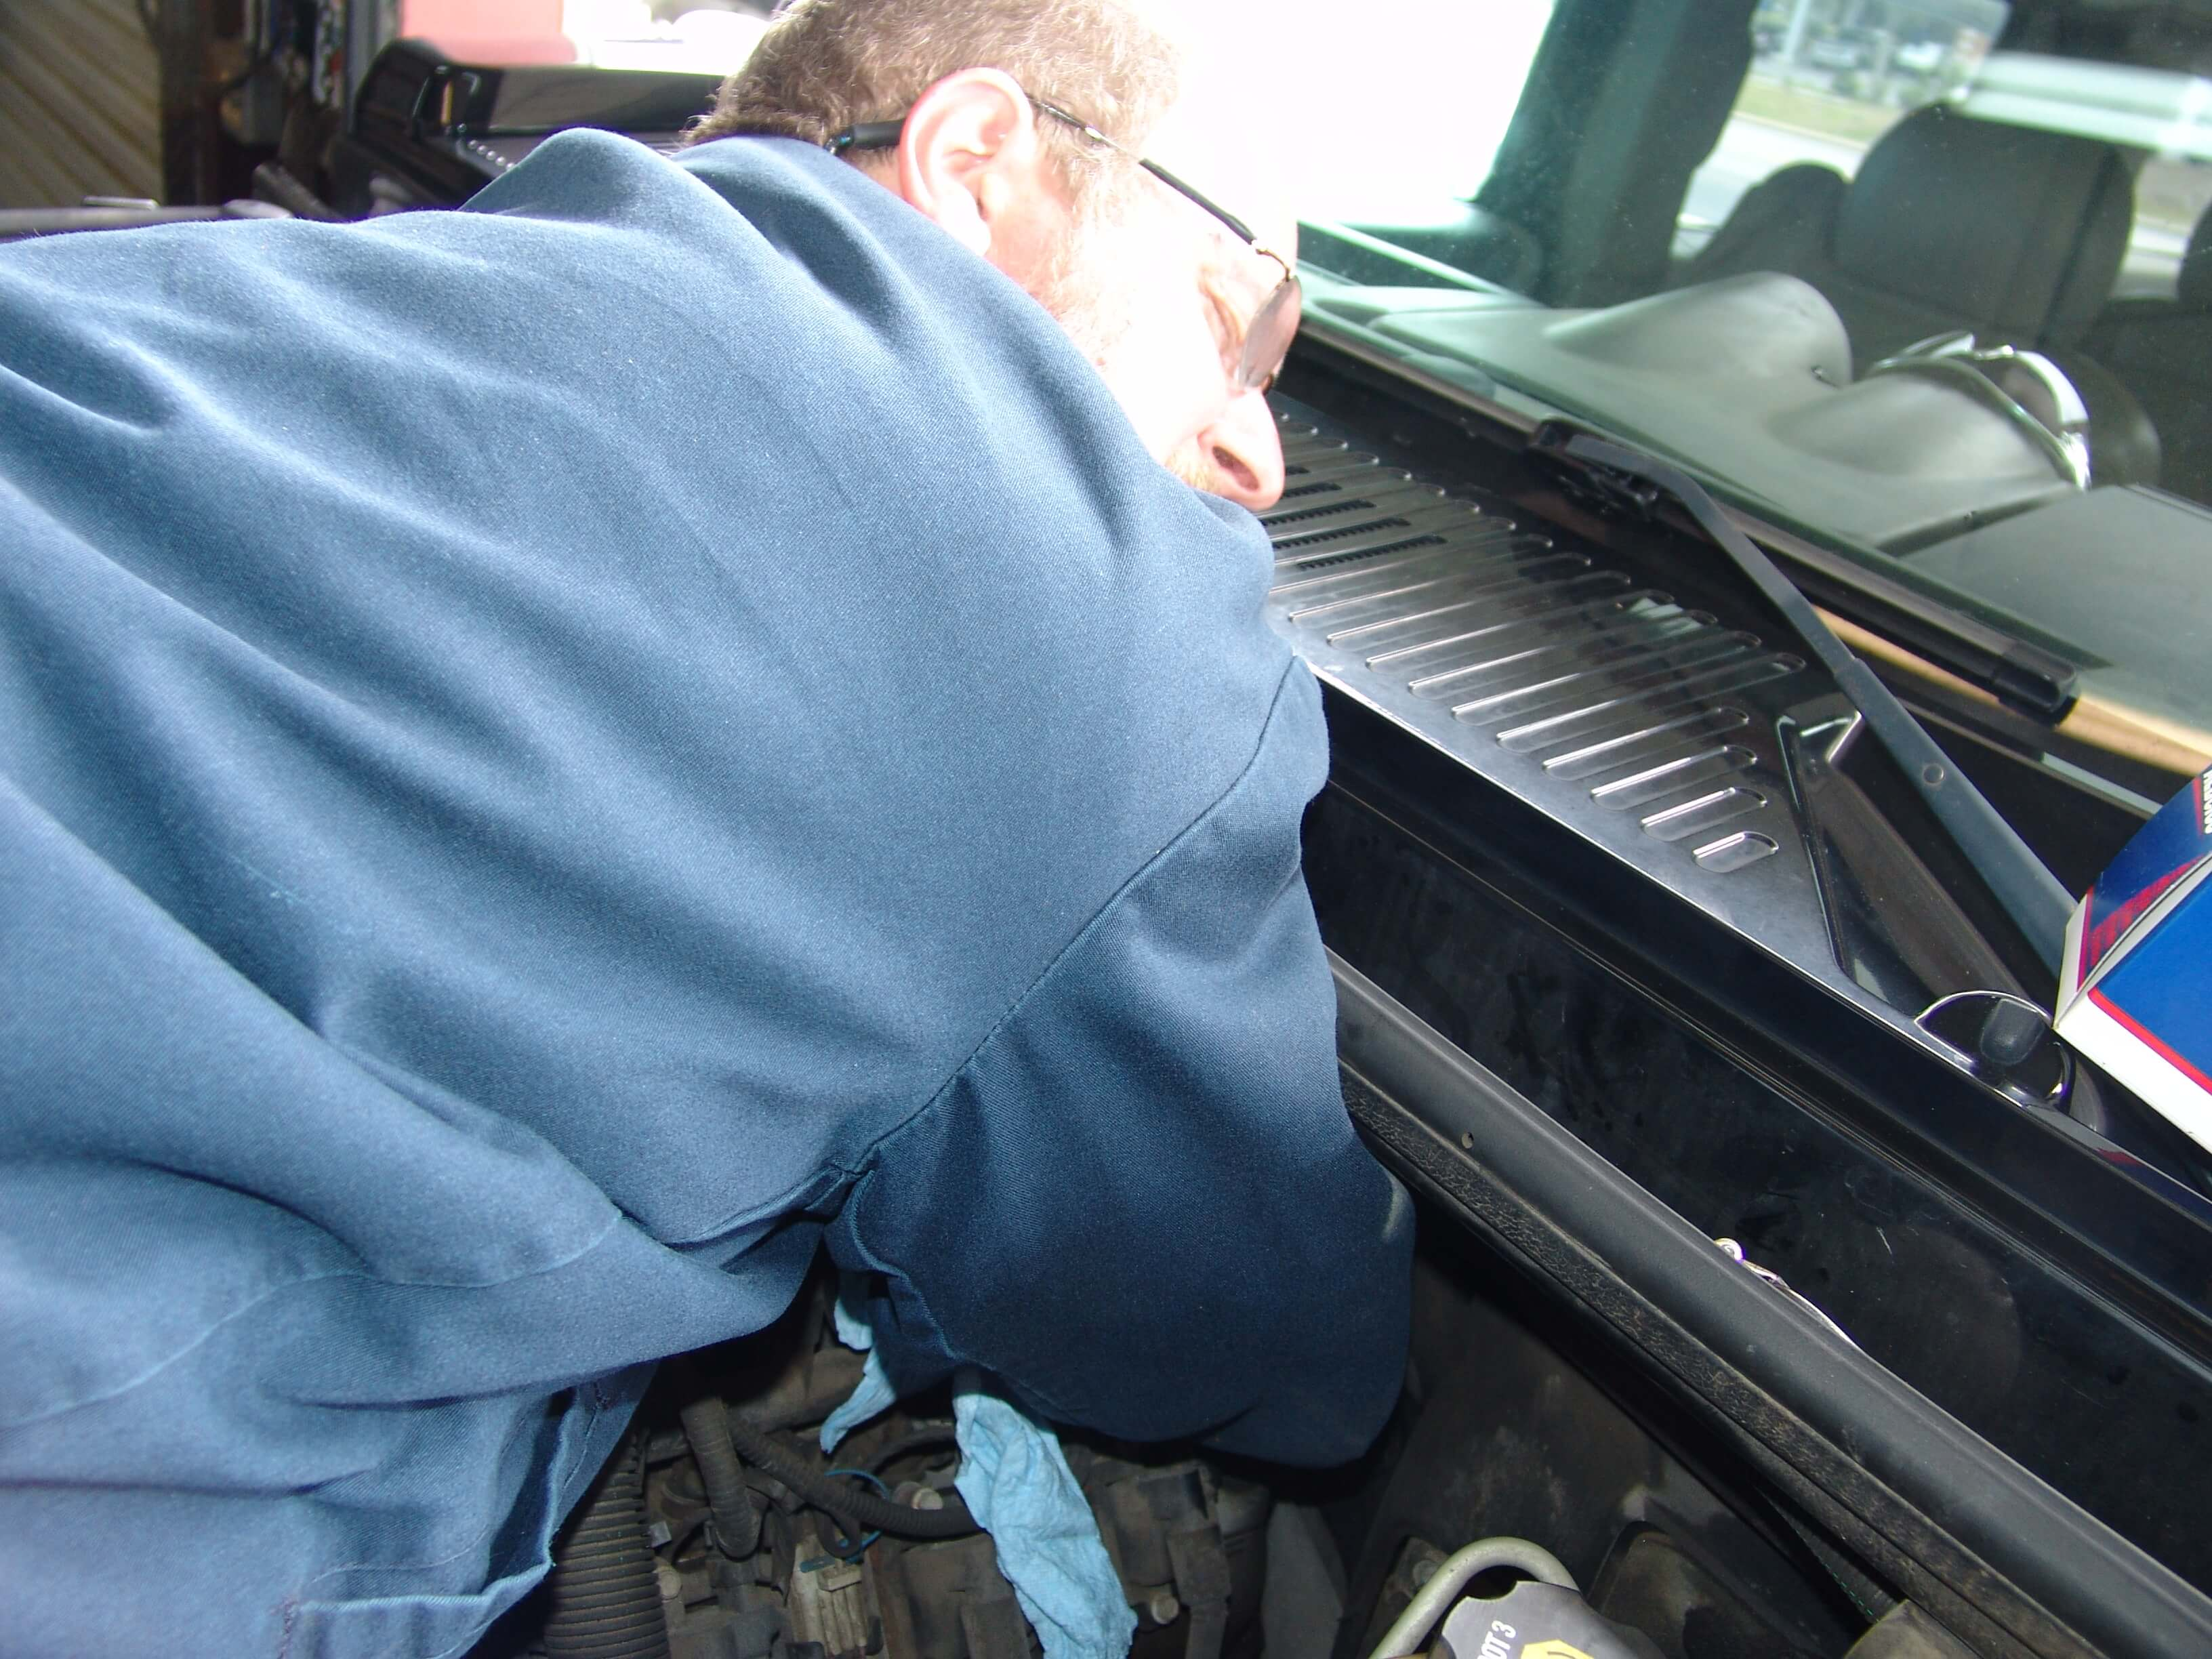 Sparkys Answers - Changing the Crank Sensor, Code P0335, On An H2 Hummer